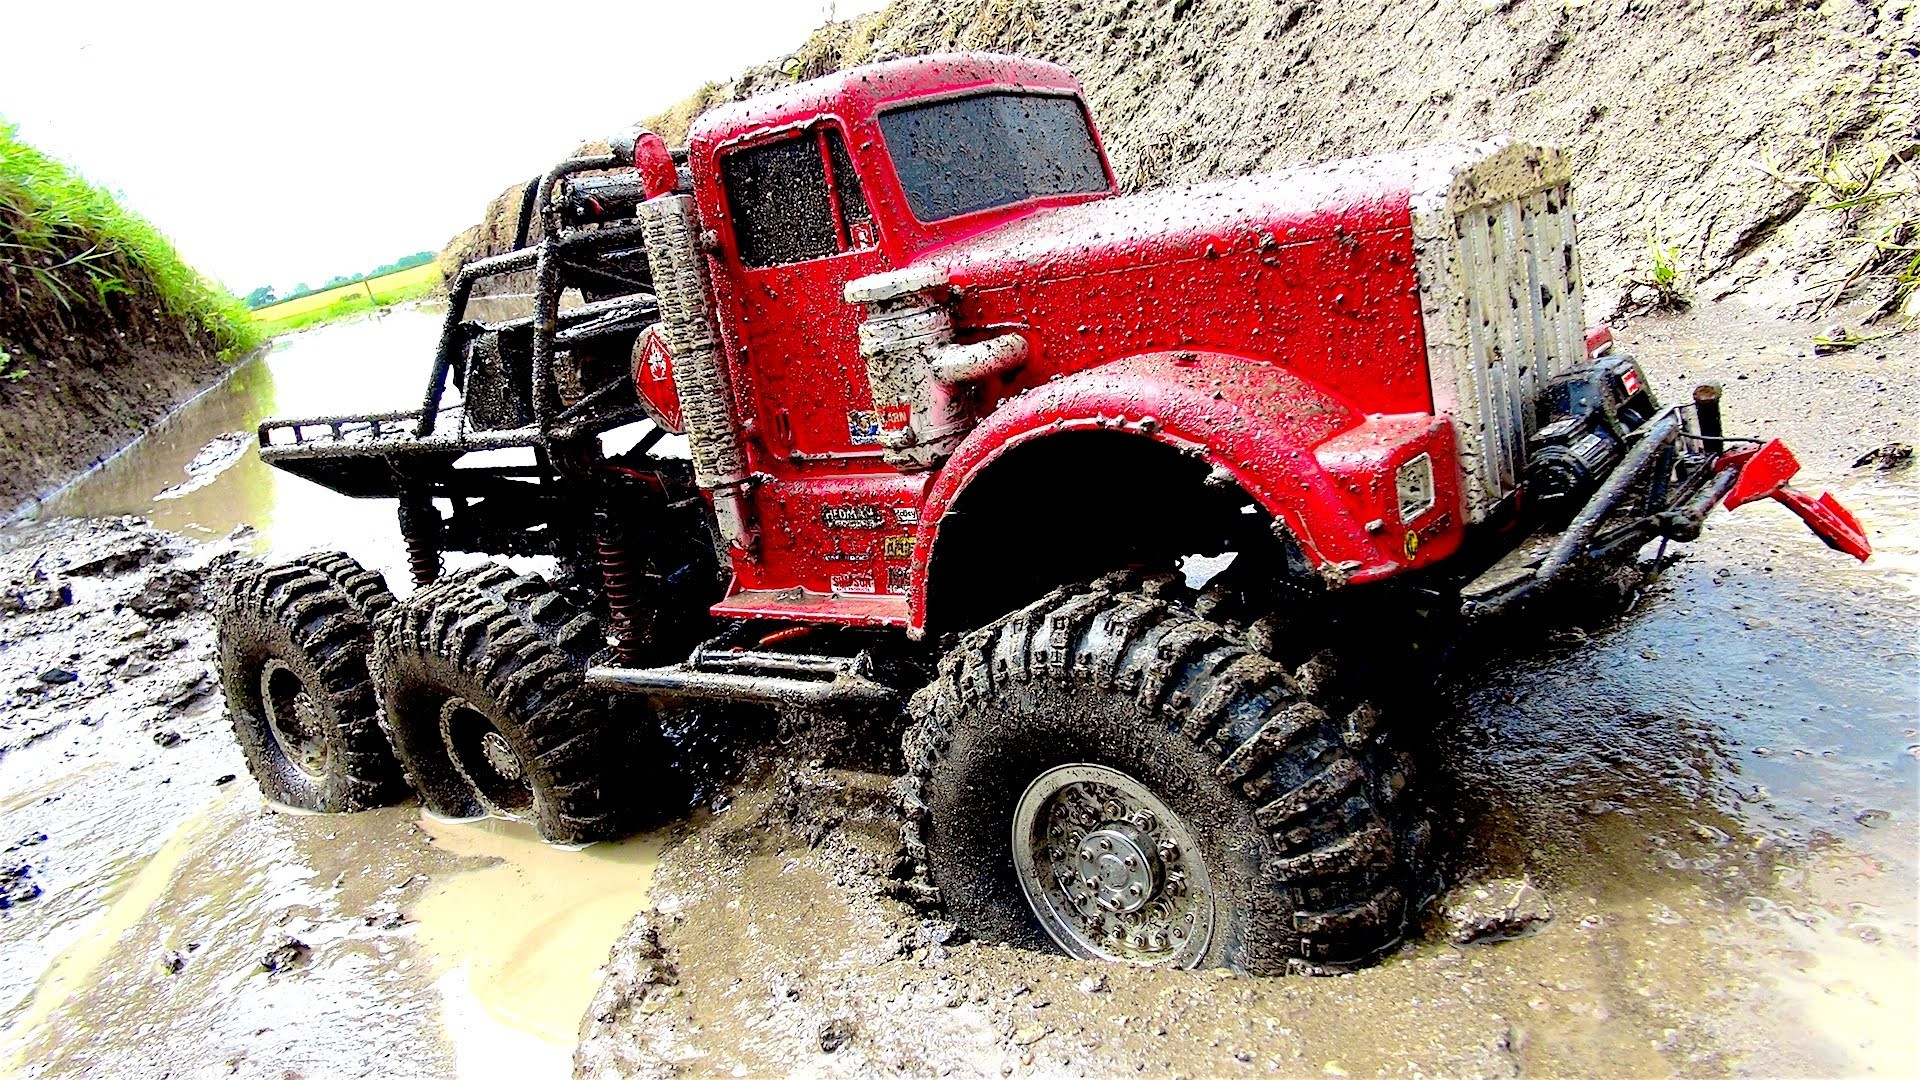 Res: 1920x1080, Big Red 6x6 Off Road Mud Action By Insane Rc Truck Will Blow You